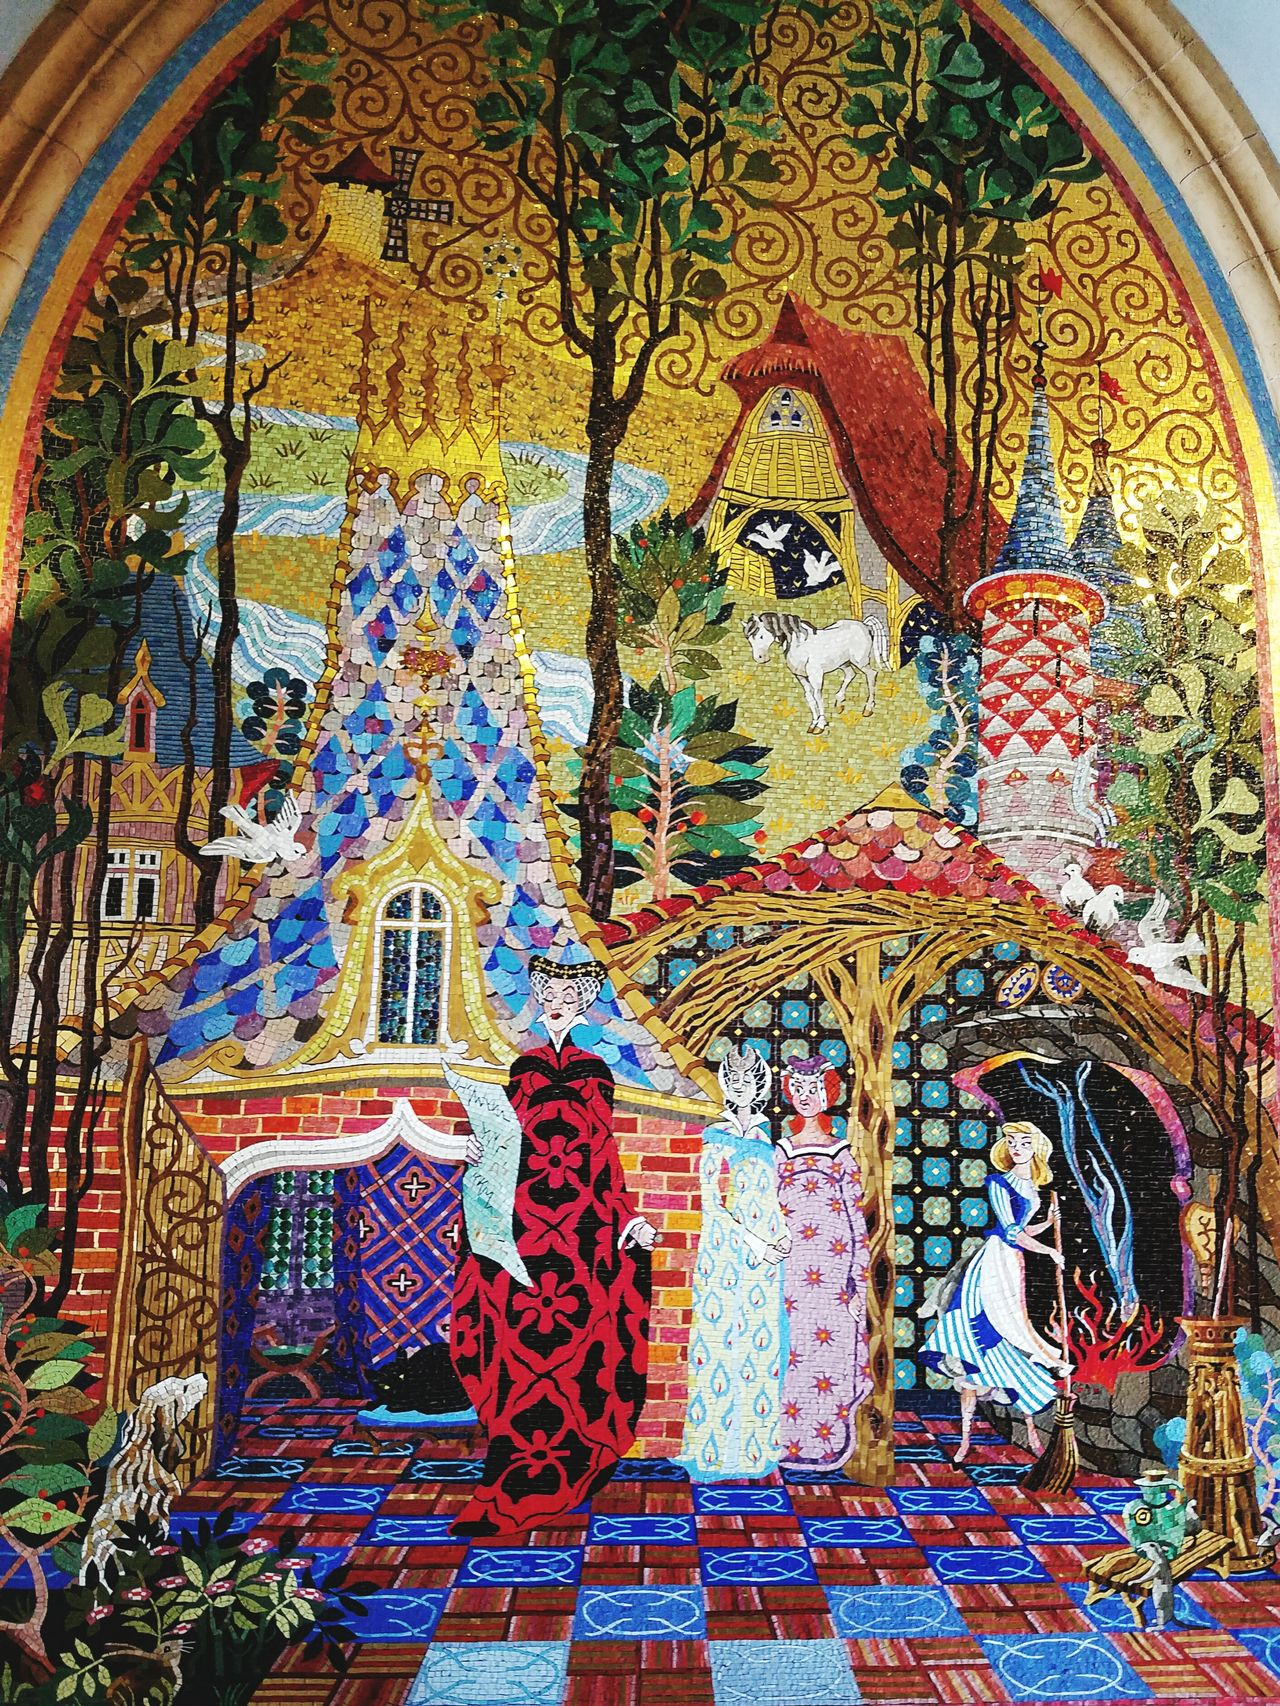 Magic Kingdom Cinderellas Castle Mosaic Wall Art Wall Murals Princess Stories Disney Disney Princess Magical Wicked Where Magic Begins Evil Step Sisters Step Mother Where Dreams Come True What Dreams Are Made Of The Most Magical Place On Earth